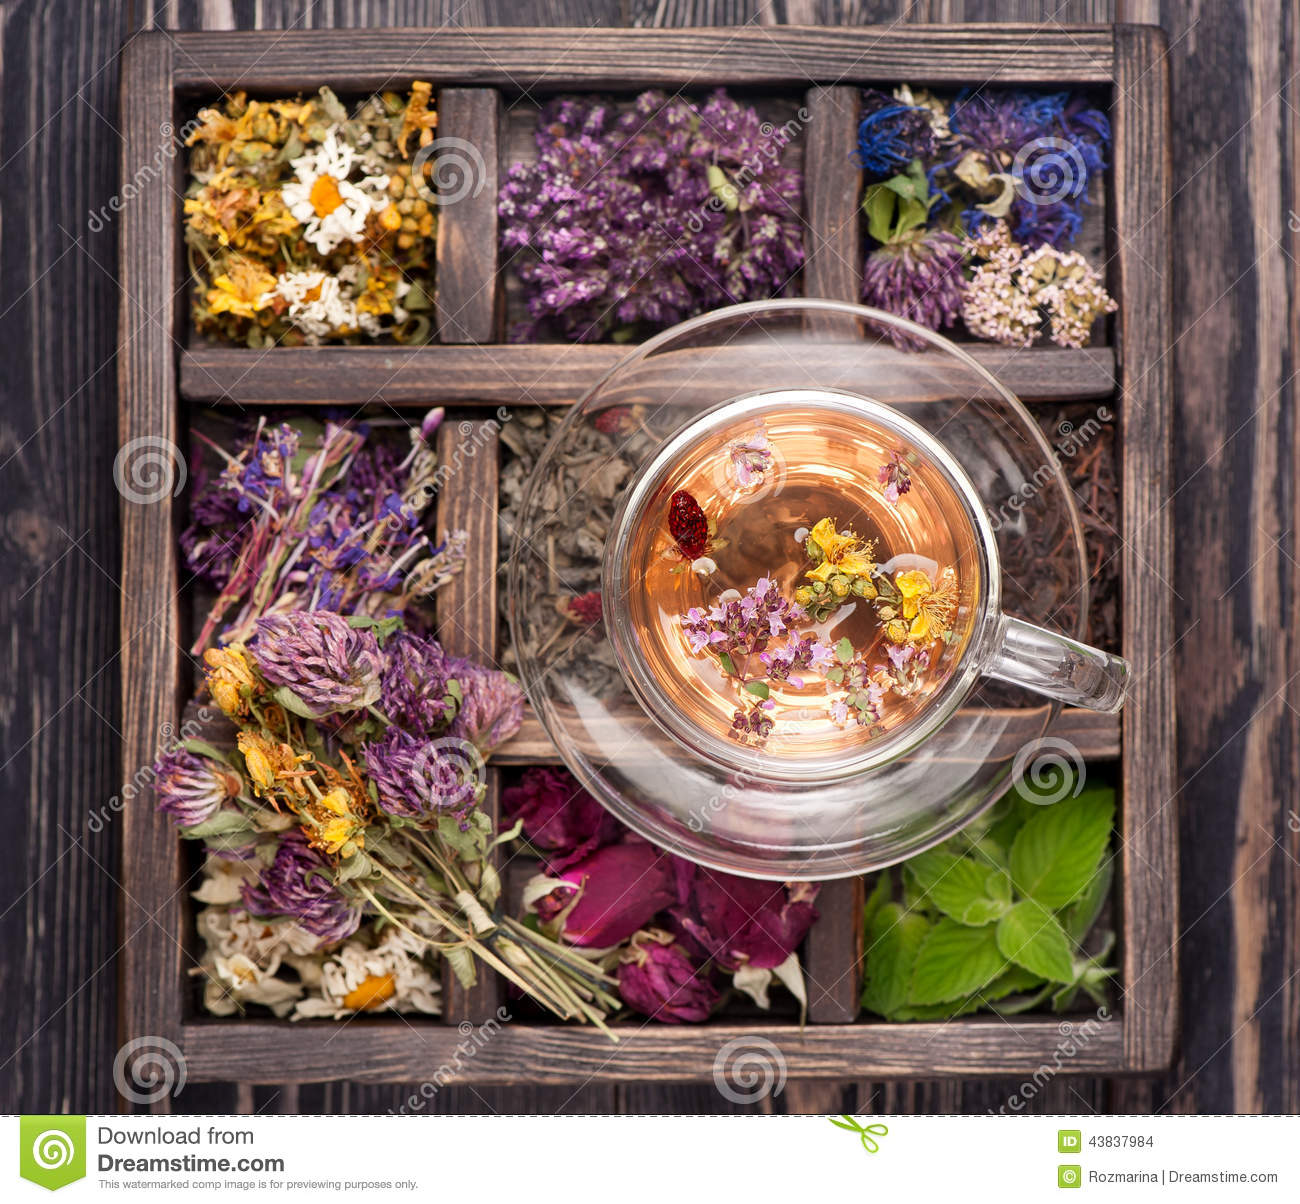 Dried Herbs and flowers and herbal tea